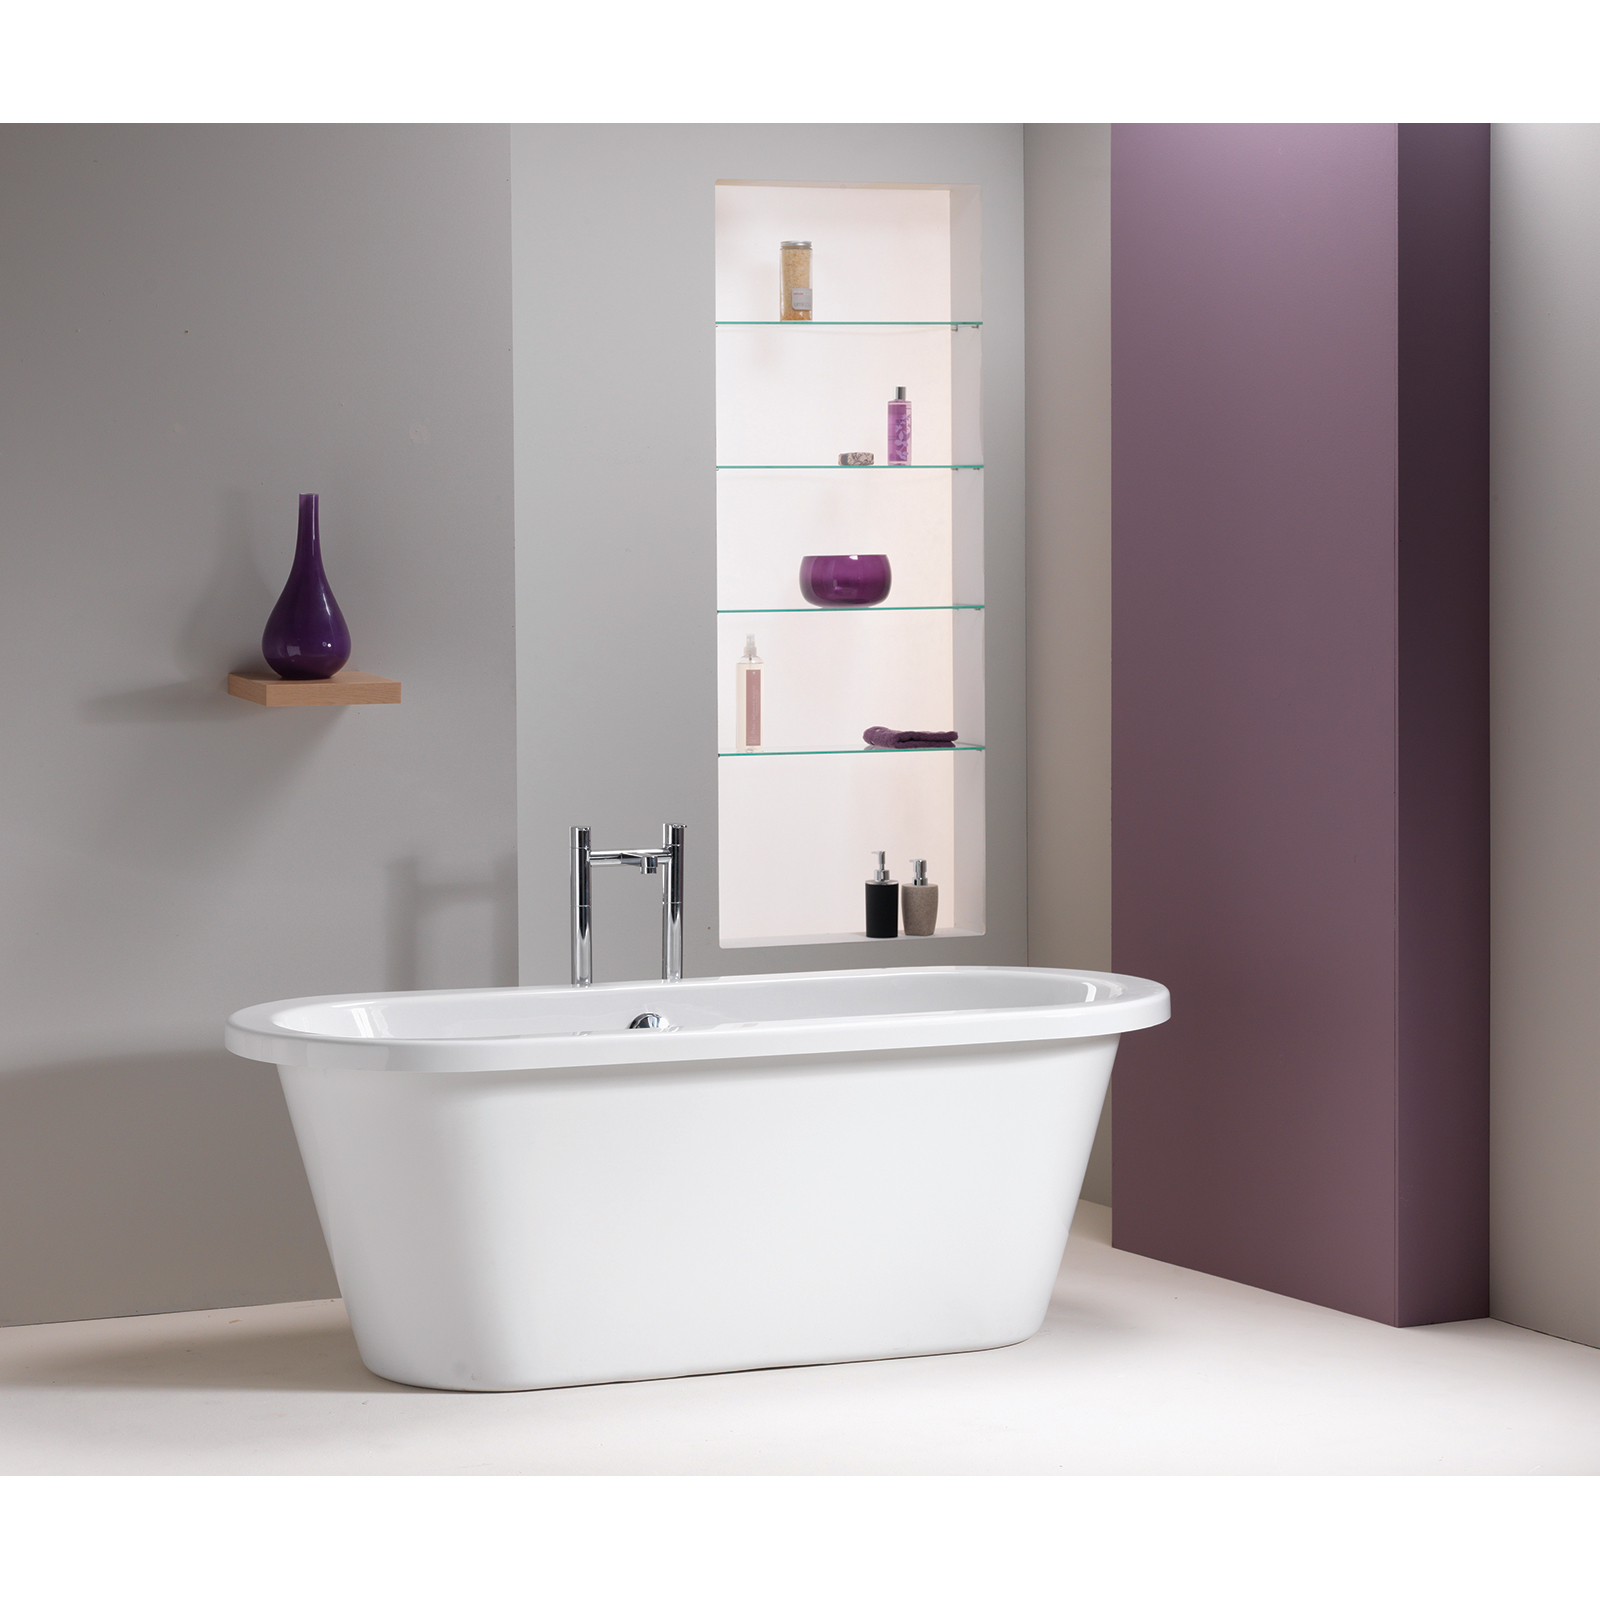 QX Stanford 1700 Freestanding Skirted Bath £556.80 at Allbits ...